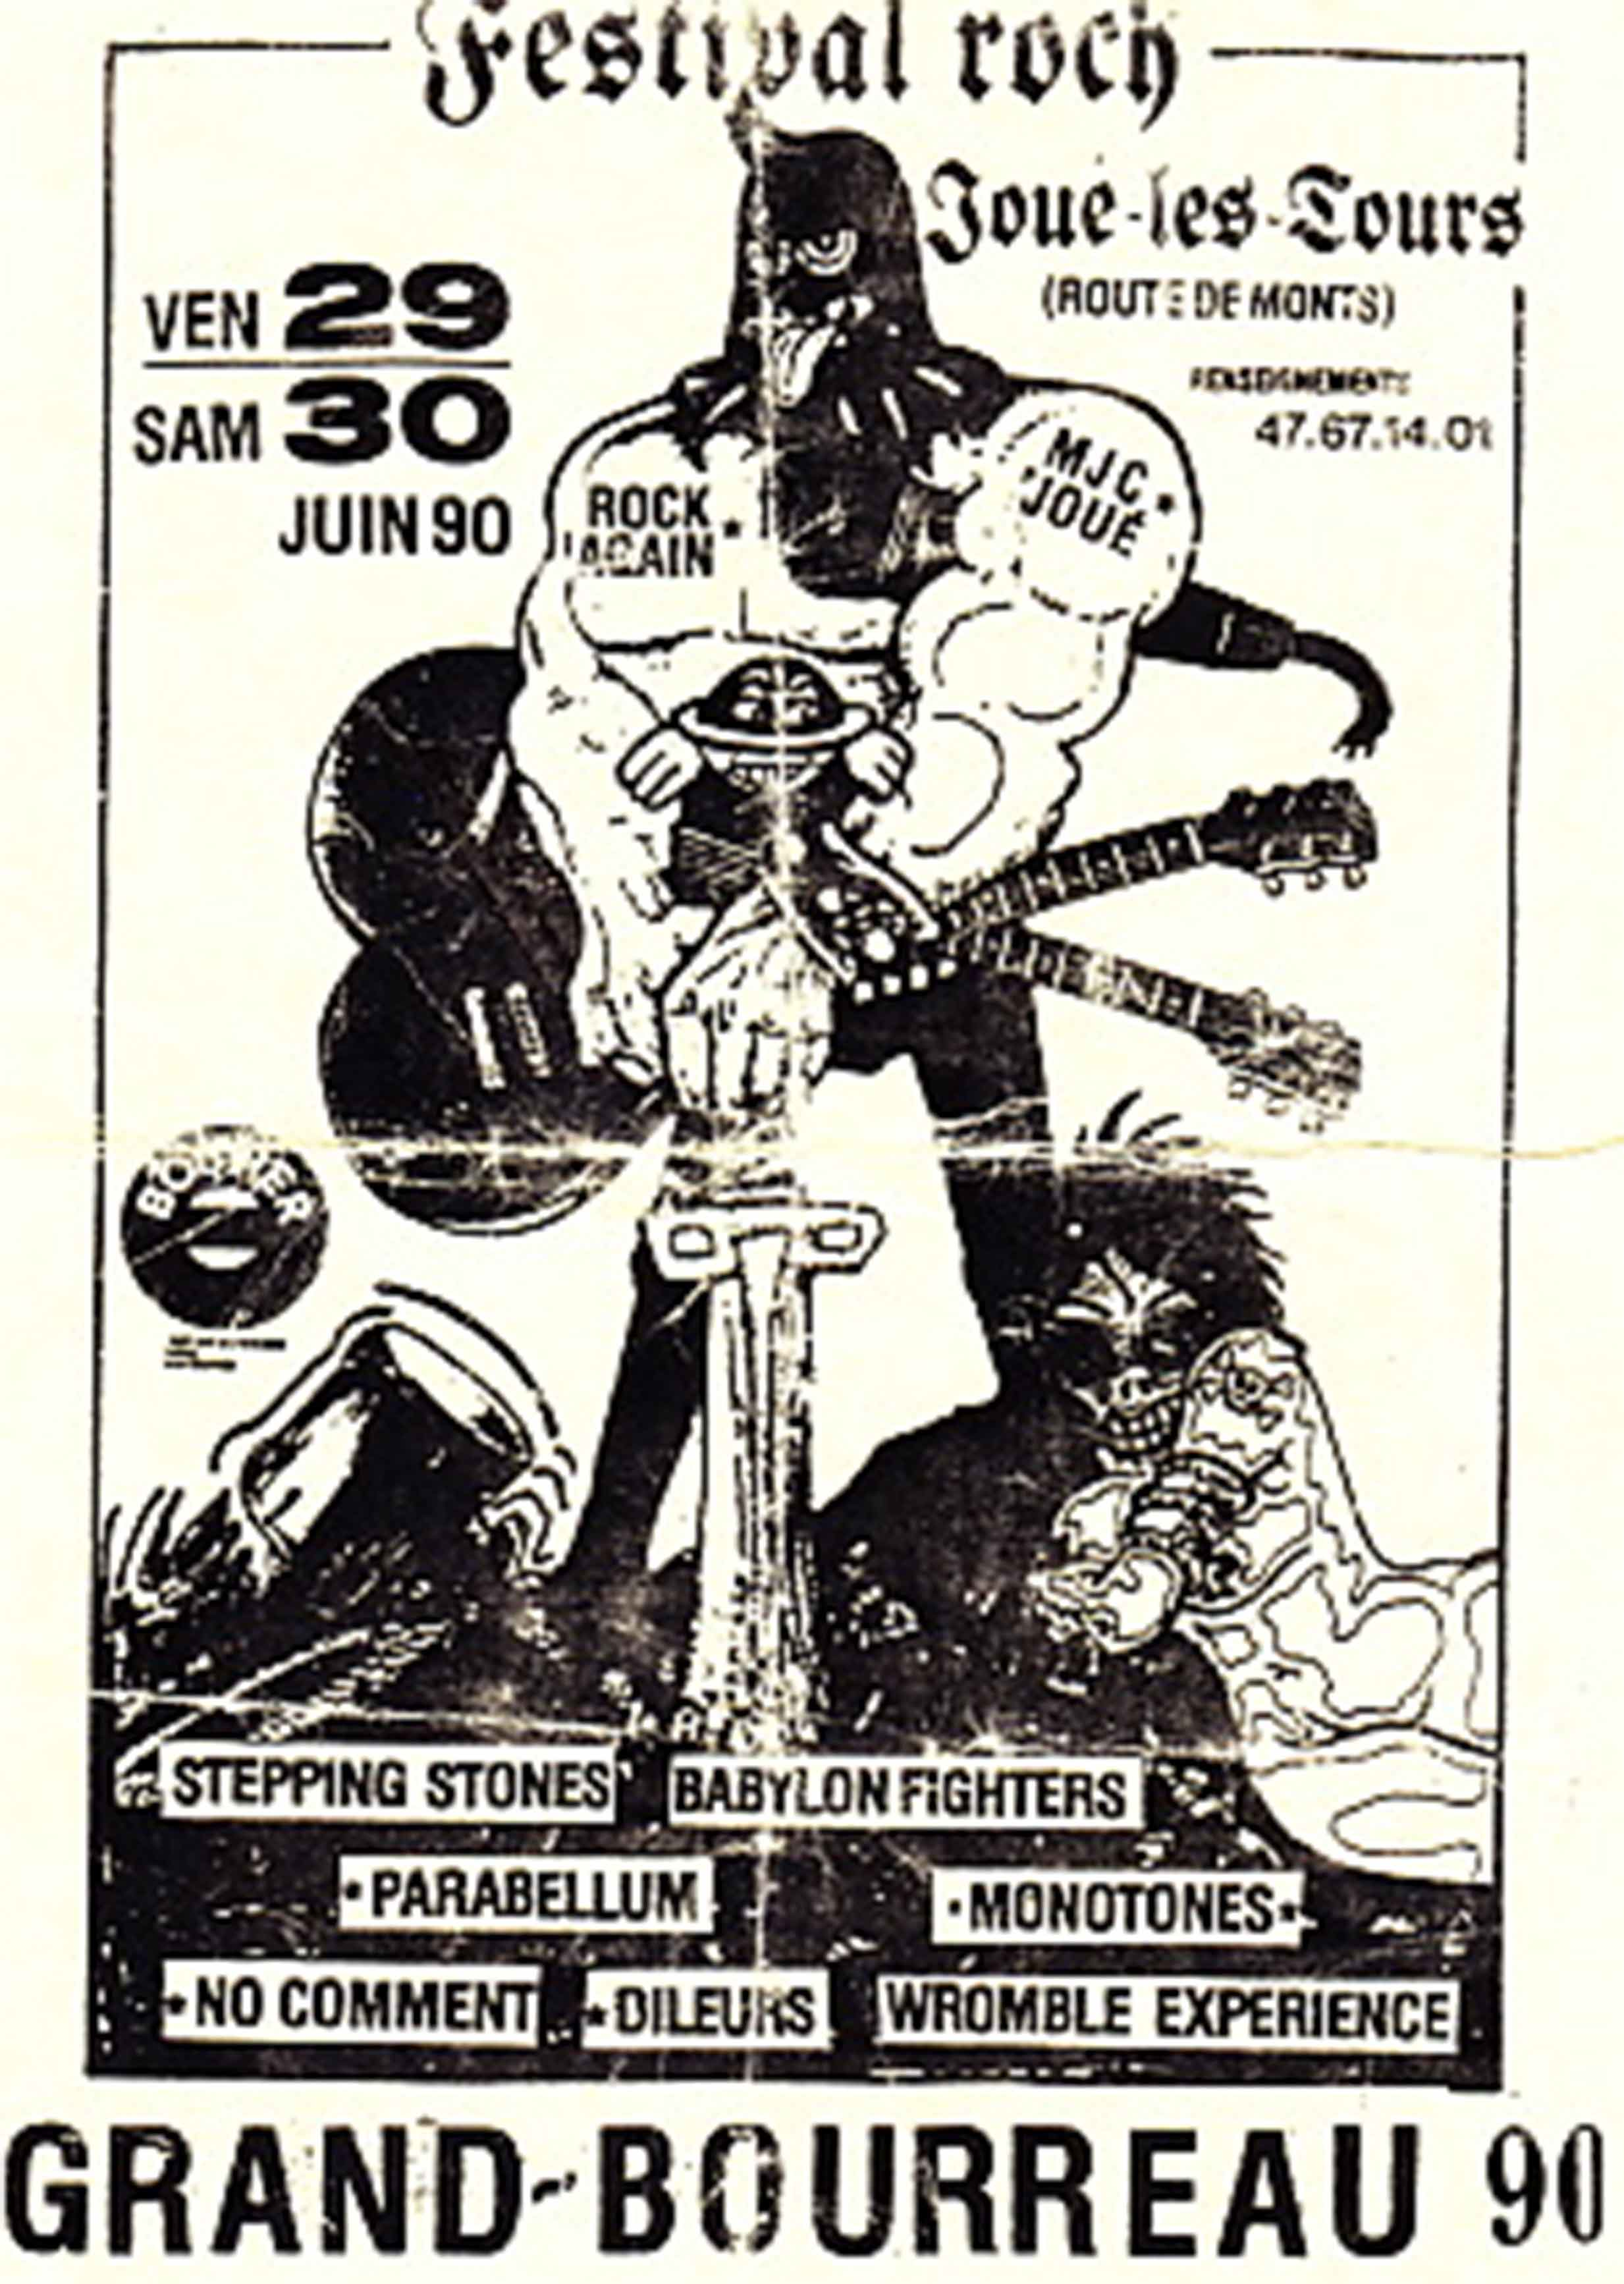 29 et 30 Juin 1990 Stepping Stones, Babylon  Fighters, Parabellum, Monotones, No Comment, Dileurs, Wromble Experience à Joué les Tours